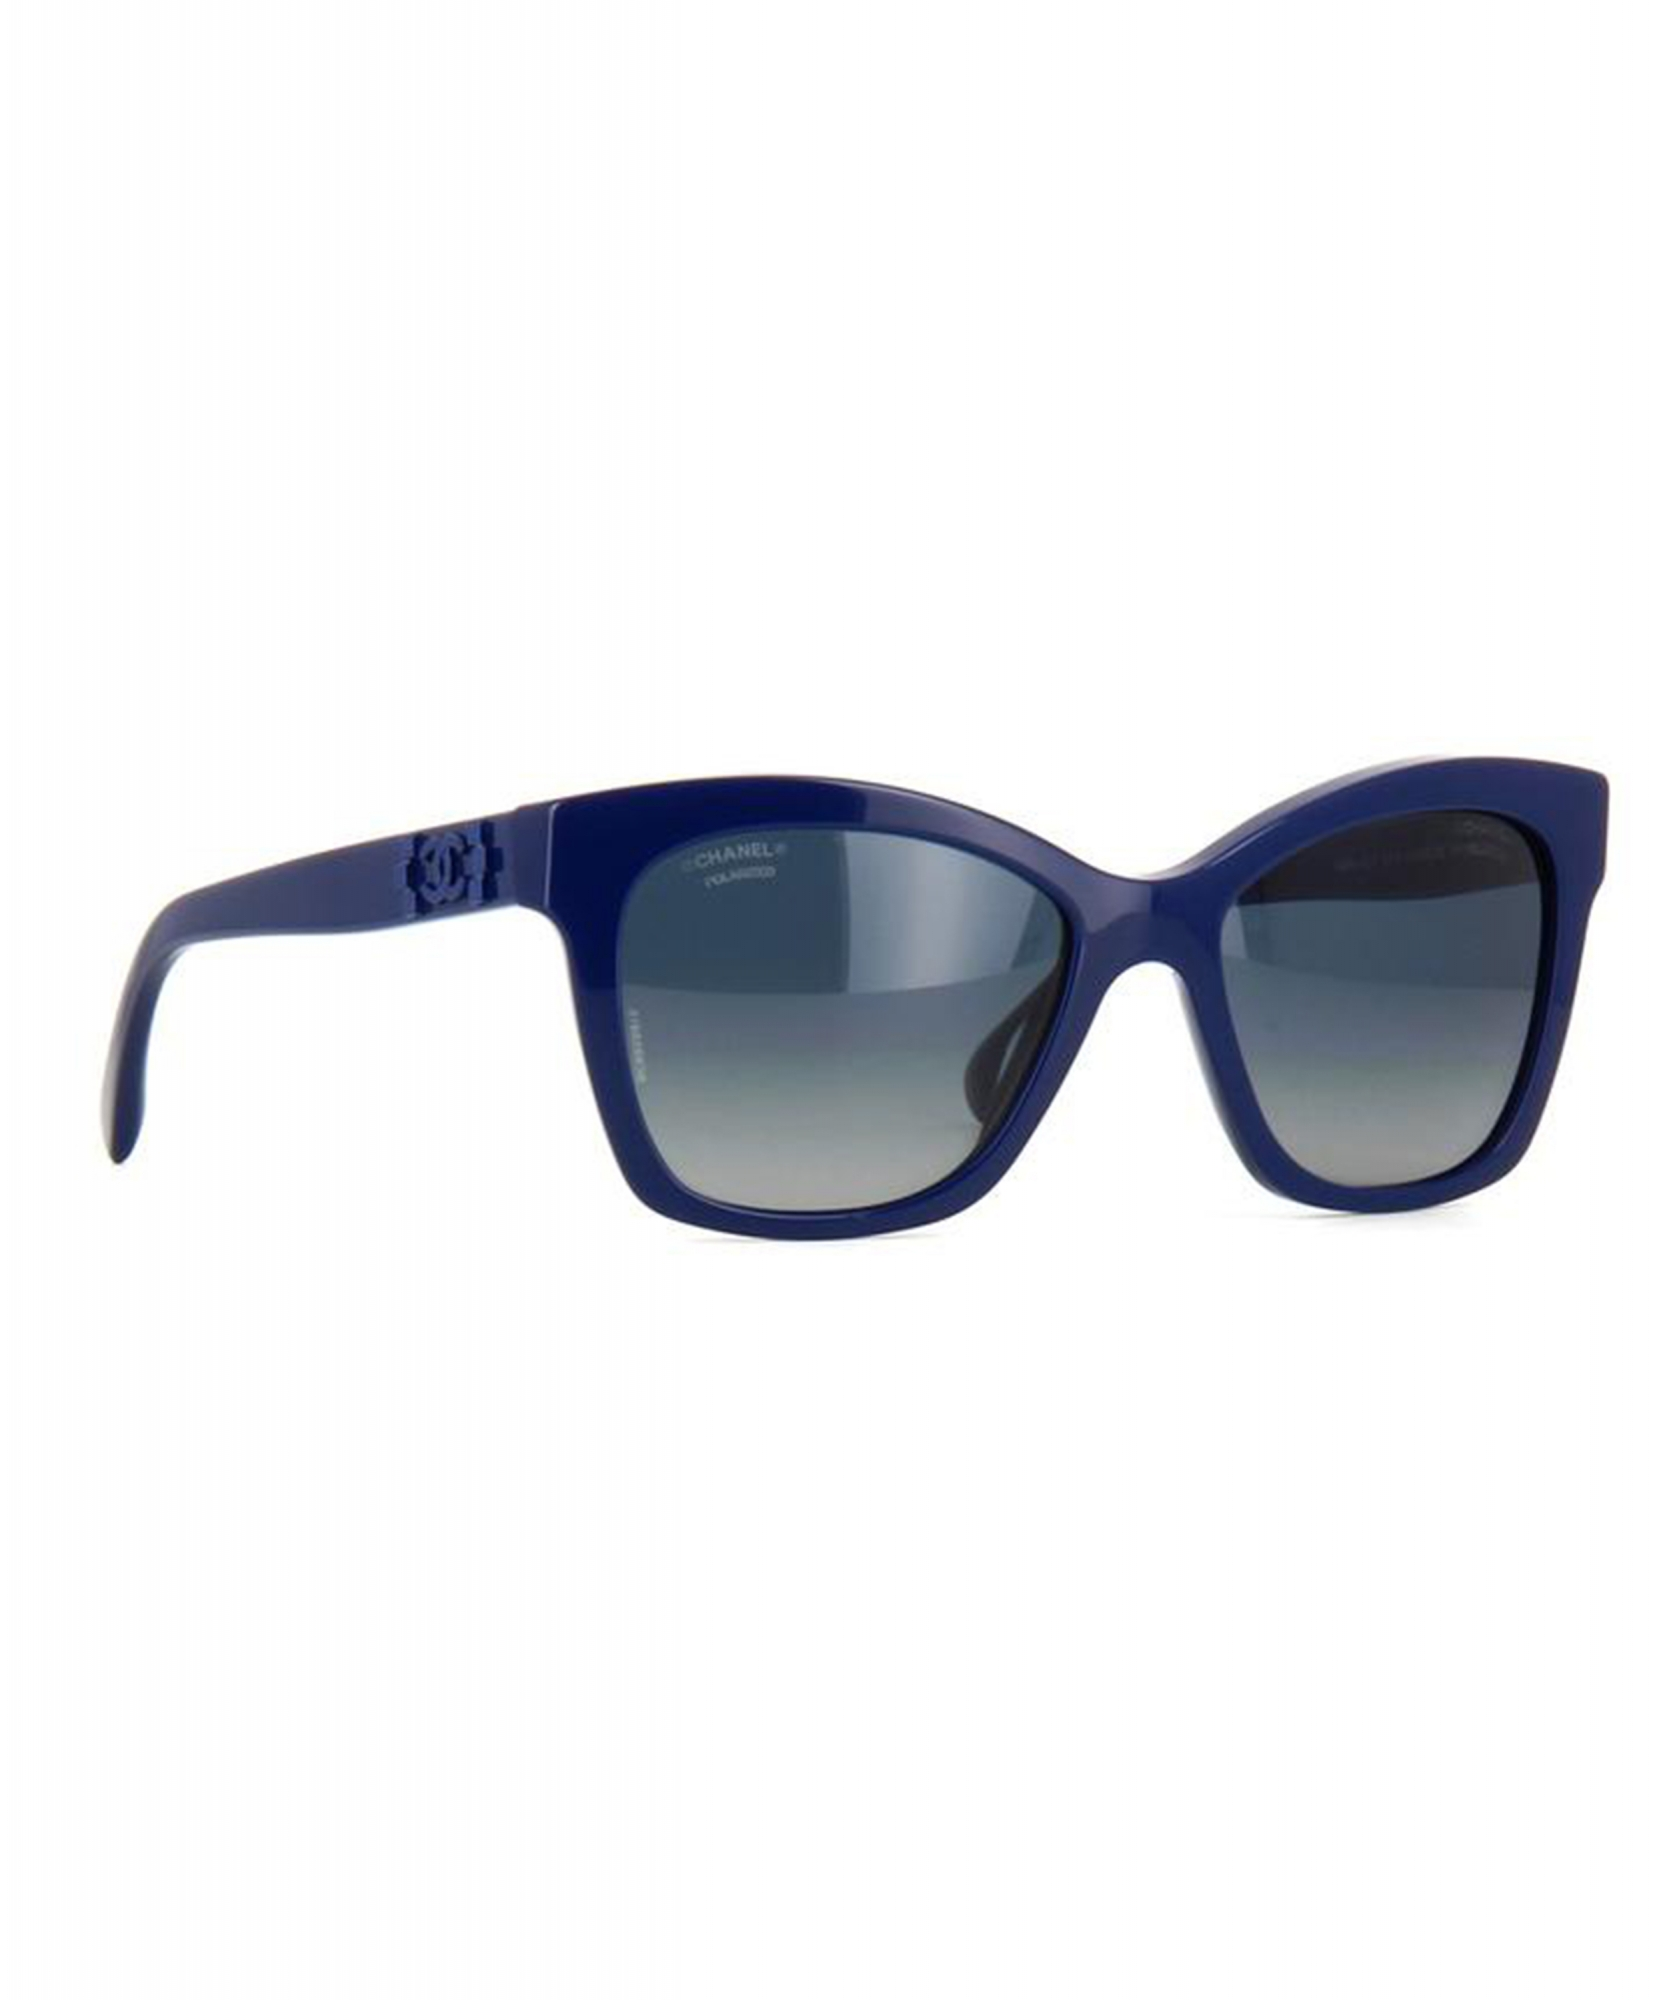 8cdef507a0 Chanel Navy Blue Boy Lego 5313 Cc Sunglasses